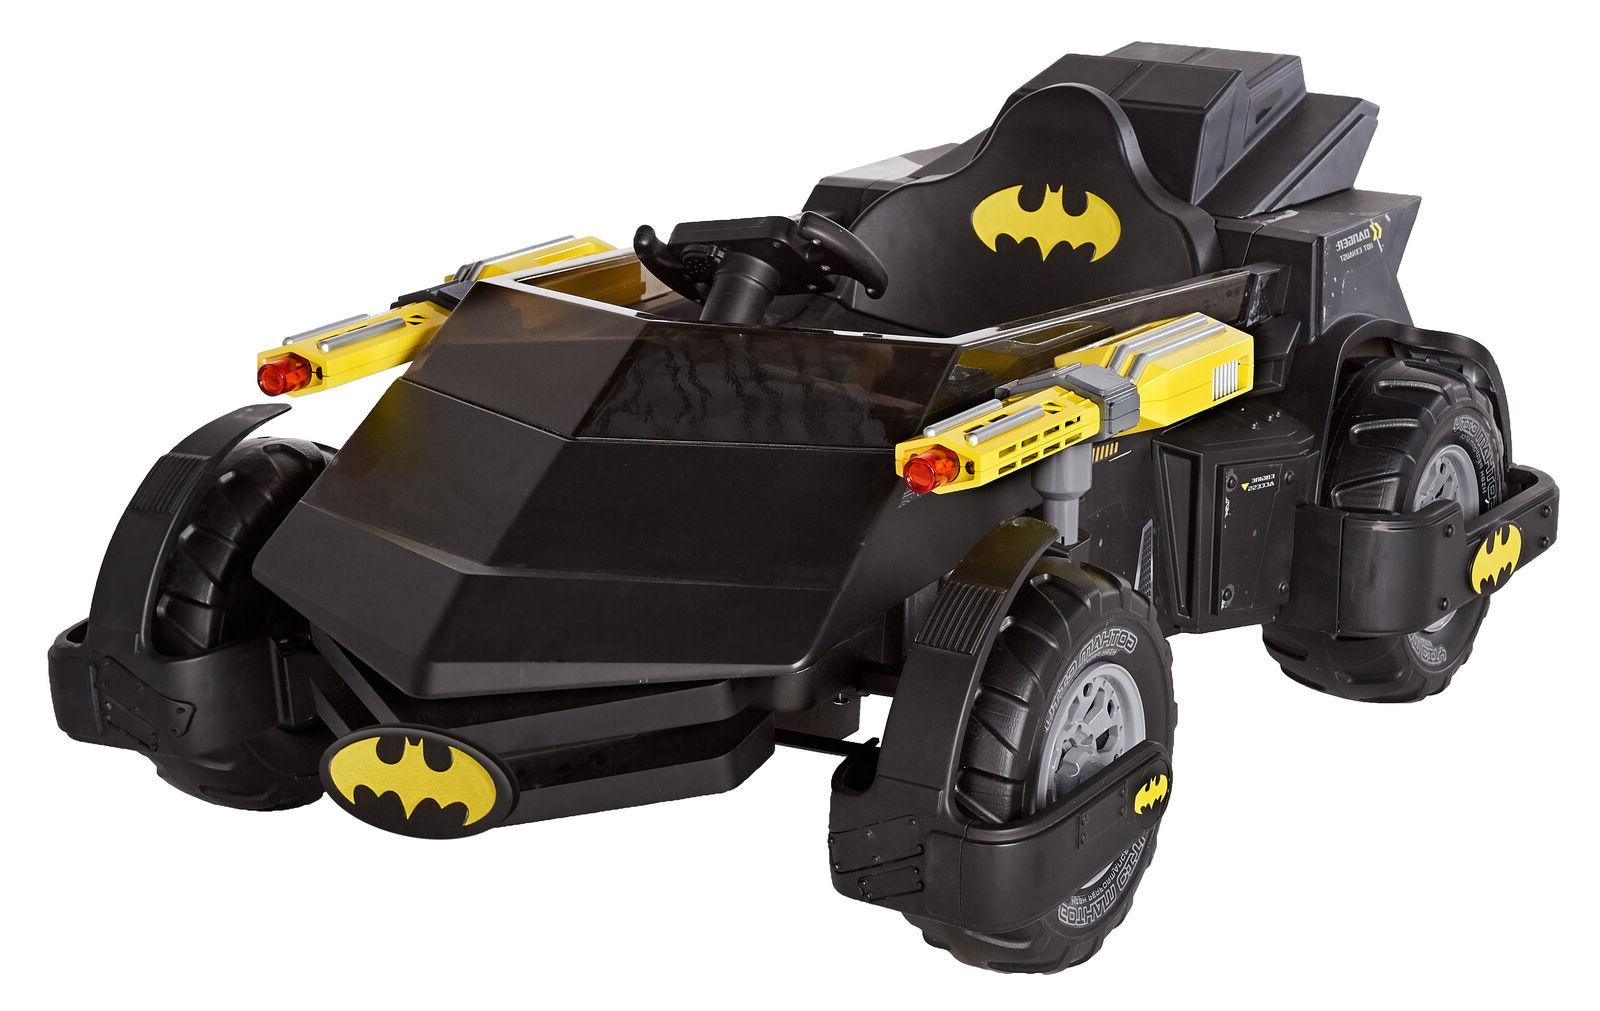 Electric Kids To Ride Toys Batman Motorized